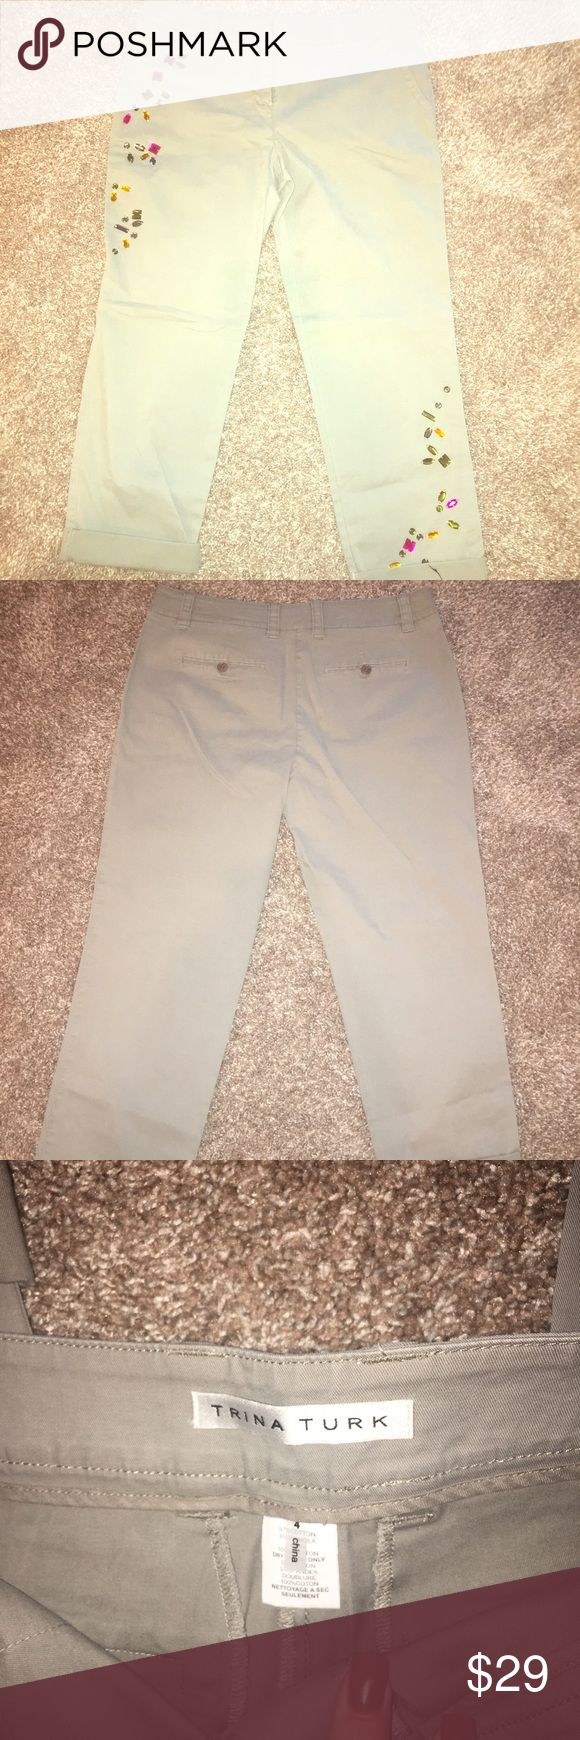 Trina Turk size 4 khaki capris jewled NWOTS Pet free smoke free home purchased from Notdsrtom so different ships same or next day cheaper on merc Trina Turk Pants Ankle & Cropped